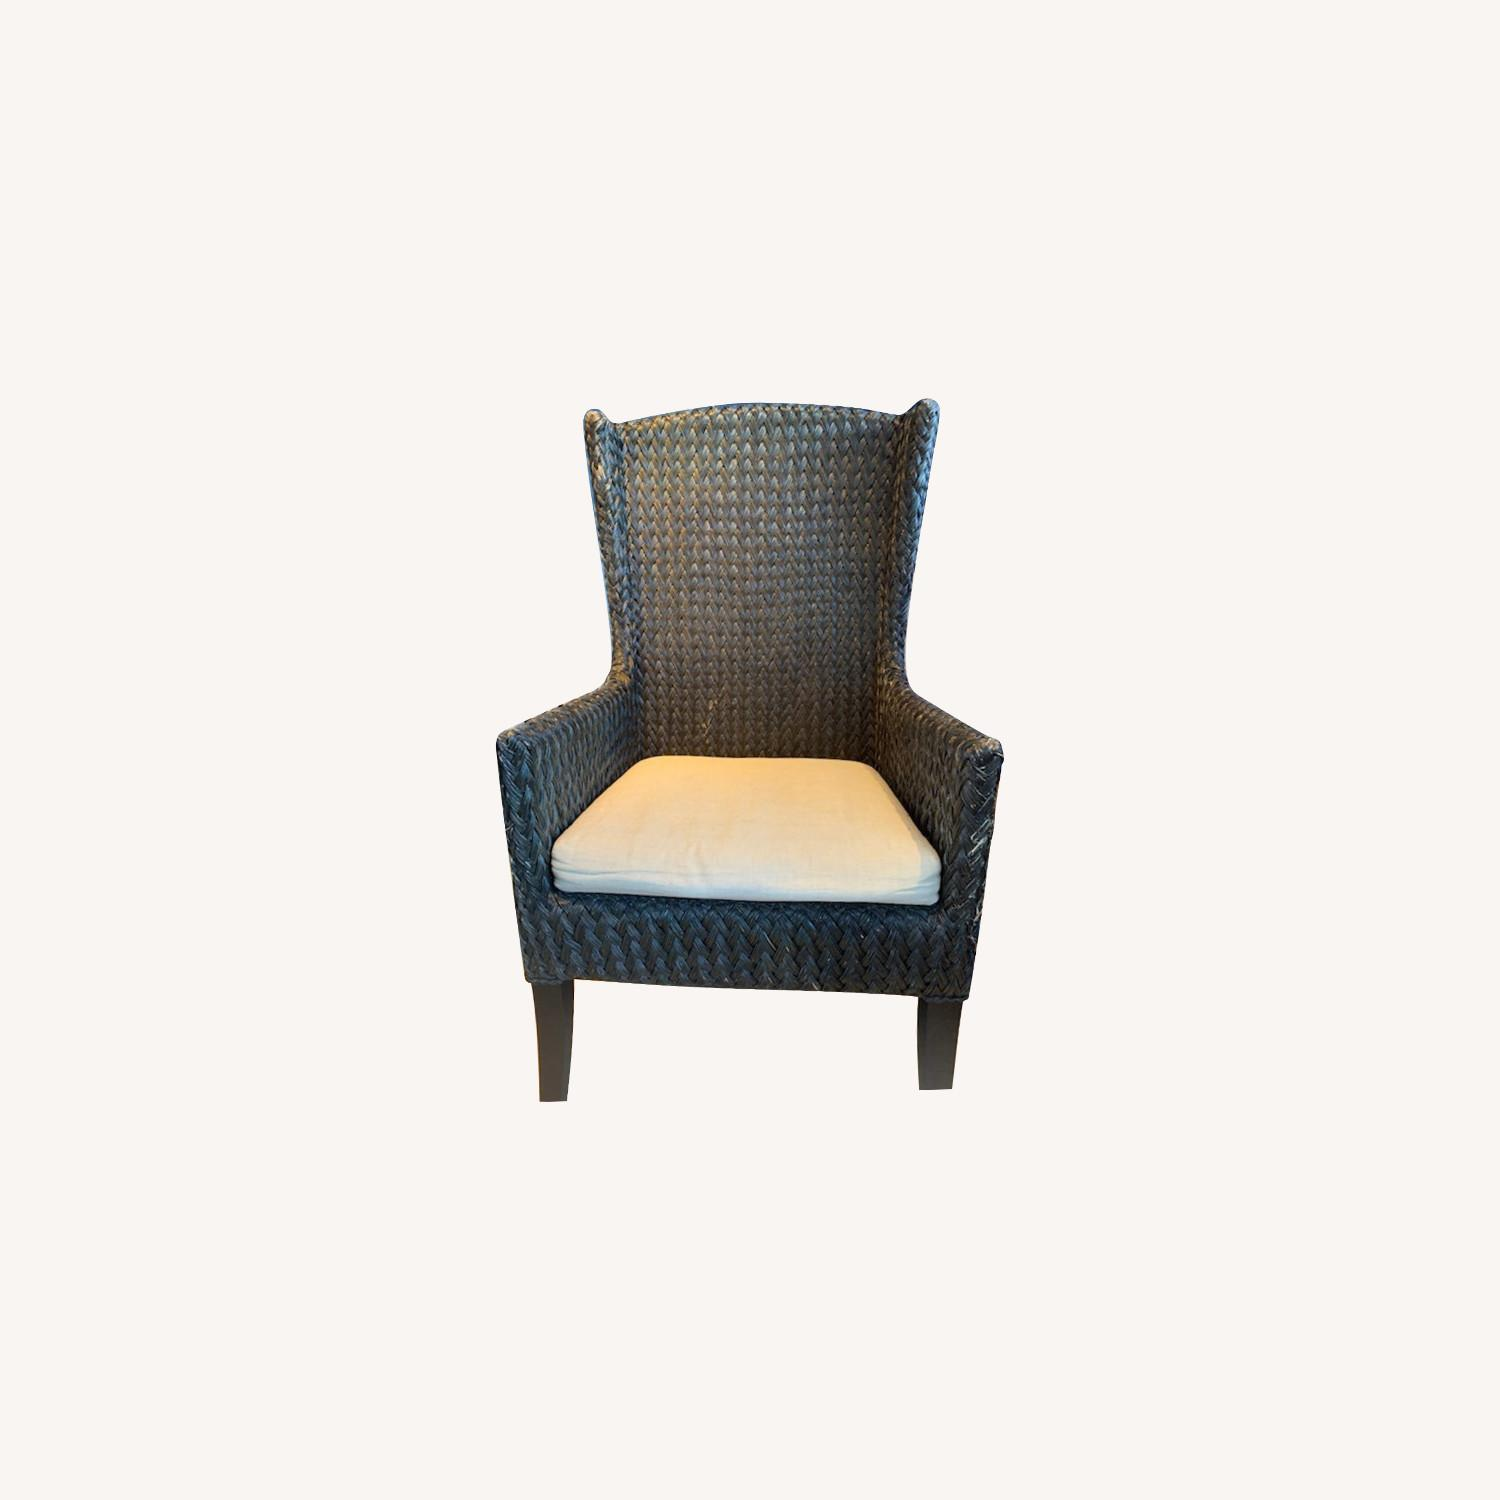 Crate & Barrel Palmetto II Arm Chair with Cushion - image-0